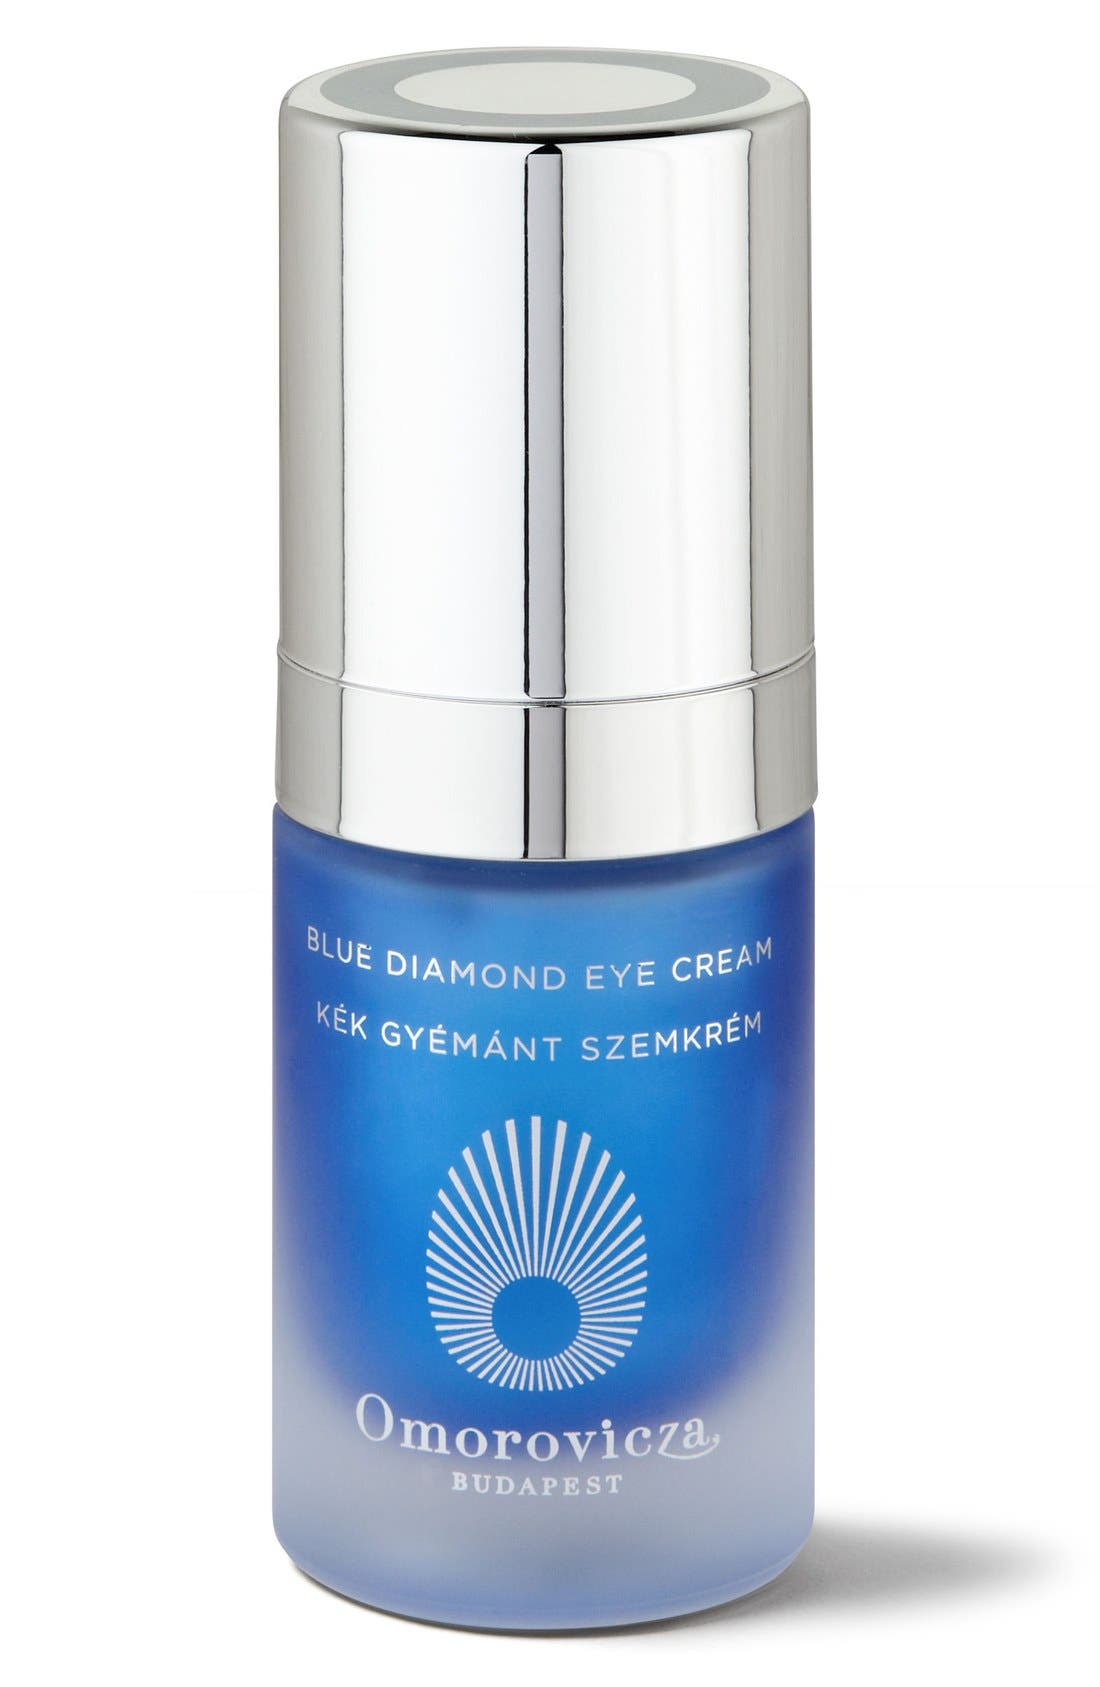 Omorovicza 'Blue Diamond' Eye Cream